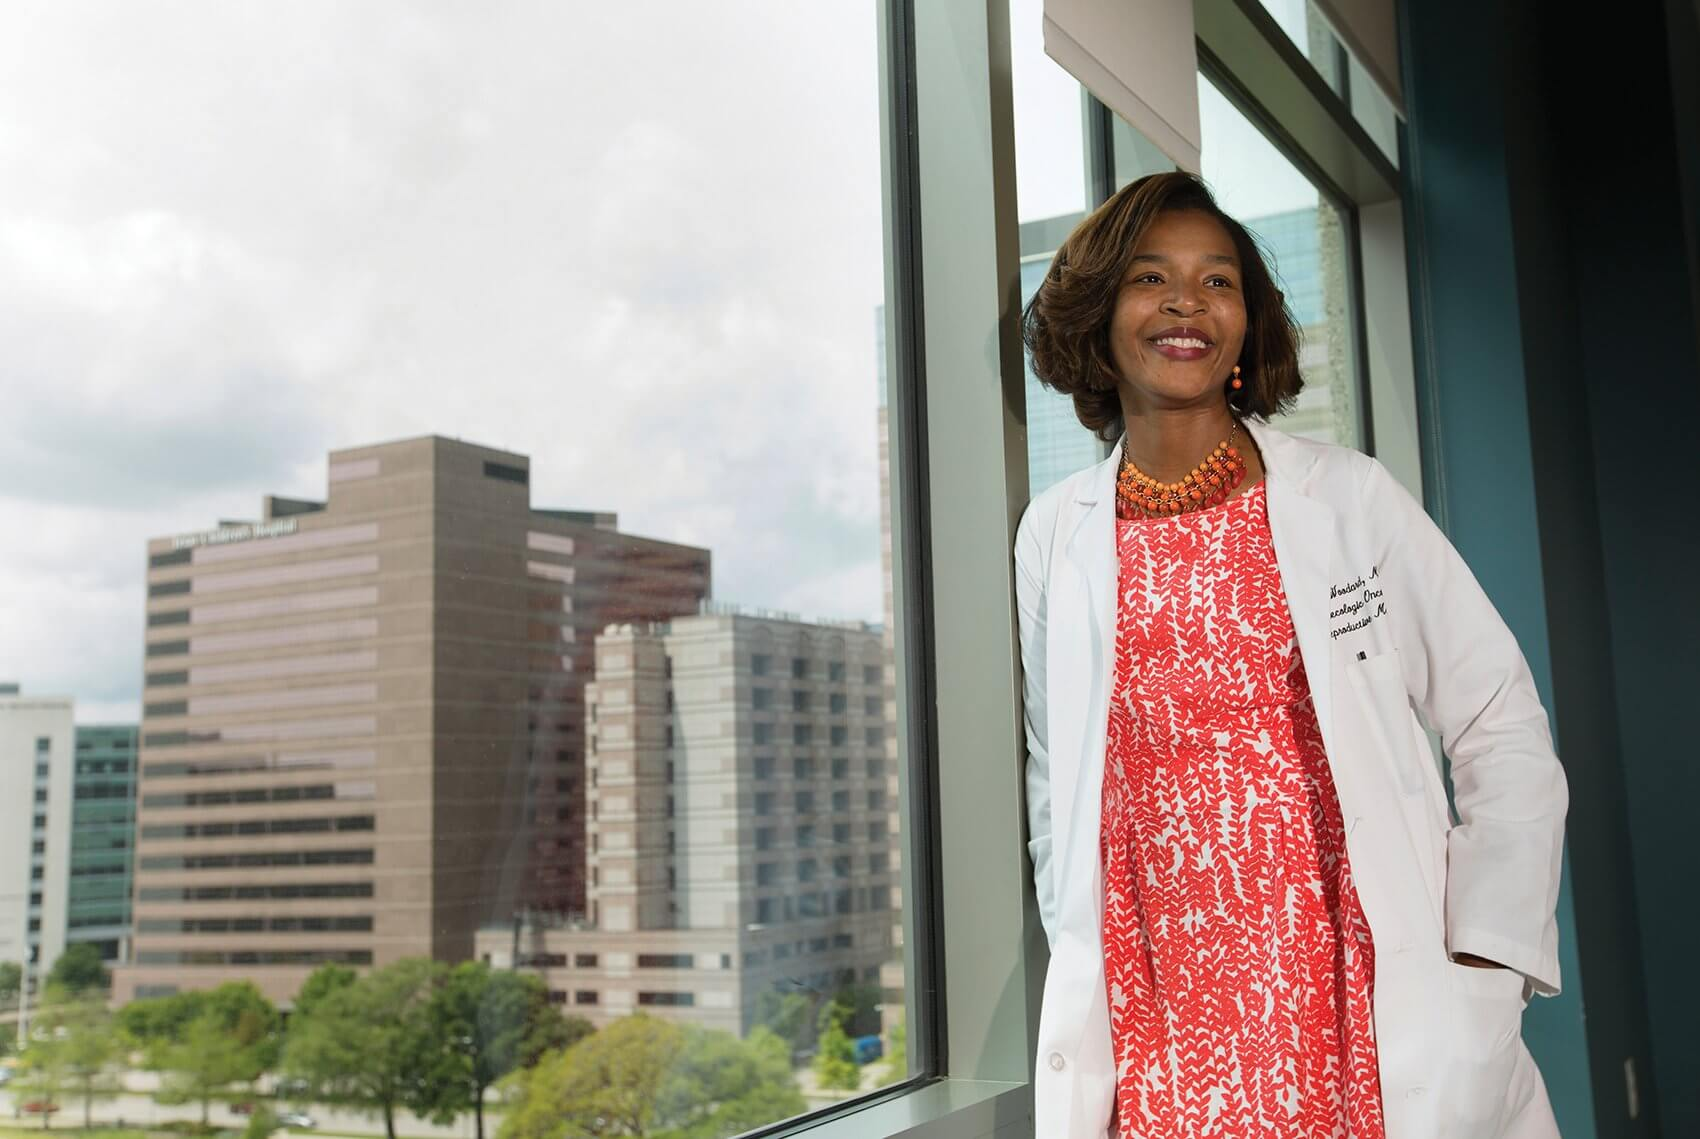 Terri Woodard, M.D., a reproductive endocrinologist with joint appointments at MD Anderson and Baylor College of Medicine.